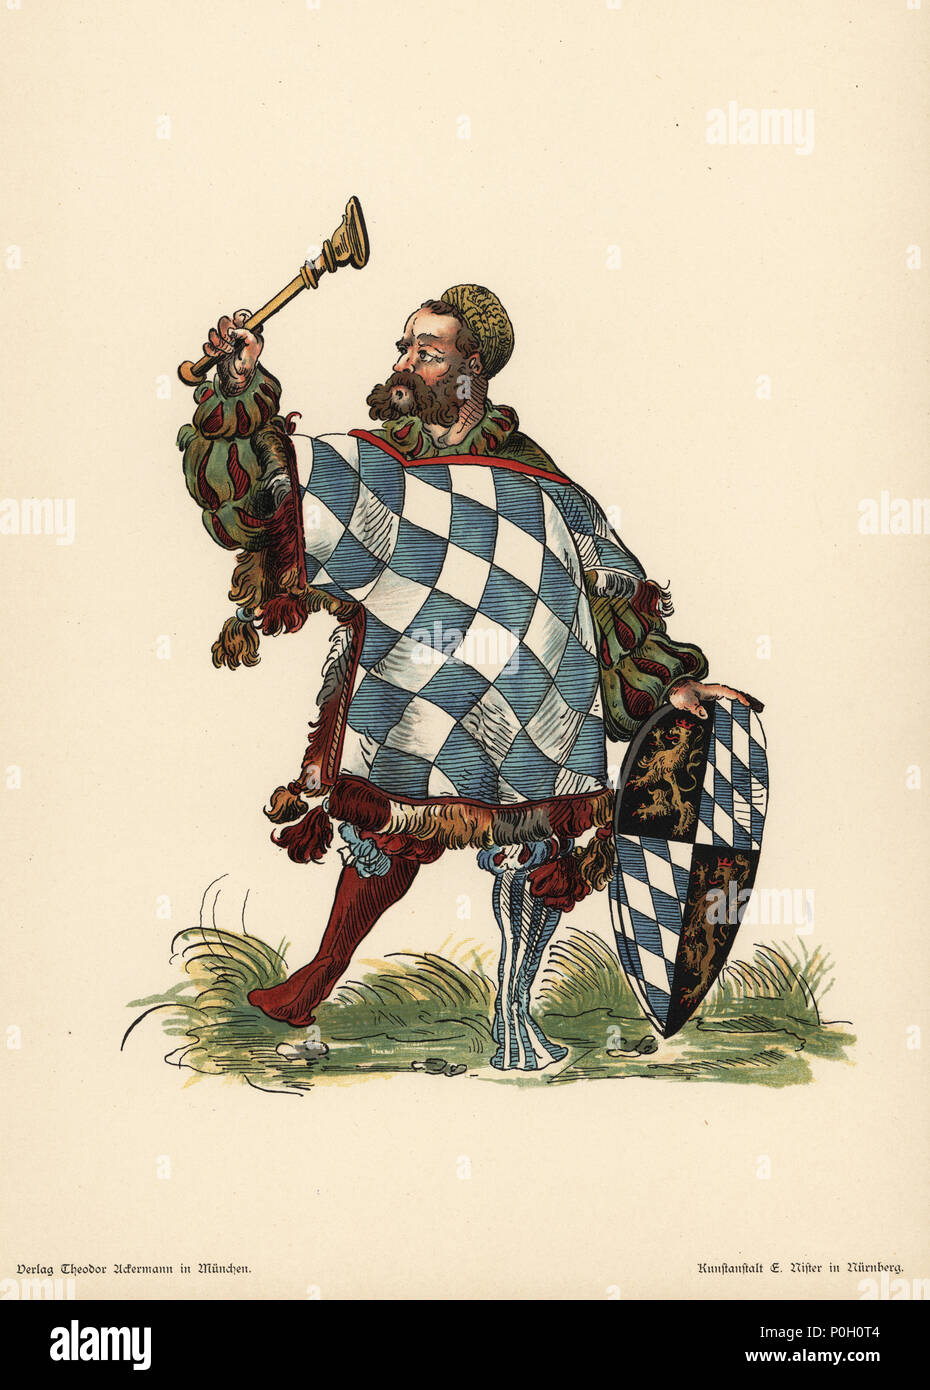 Herald of Old Bavaria, Herold der altbavarische. He wears an armorial tunic with the silver and blue lozenges of Bavaria, and holds an escutcheon with Palatine lion and Bavarian arms. Chromolithograph from Otto Watzelberger's Beitraege zum Formenschatz der Heraldik (Contributions to the Vocabulary of Heraldry), Theodor Ackermann, Munich, 1900. Otto Watzelberger was Secretary of the Koeniglich Bayerischen Haus-Ritter-Ordens vom heiligen Georg (Royal Bavarian House Equestrian Order of Saint George). - Stock Image